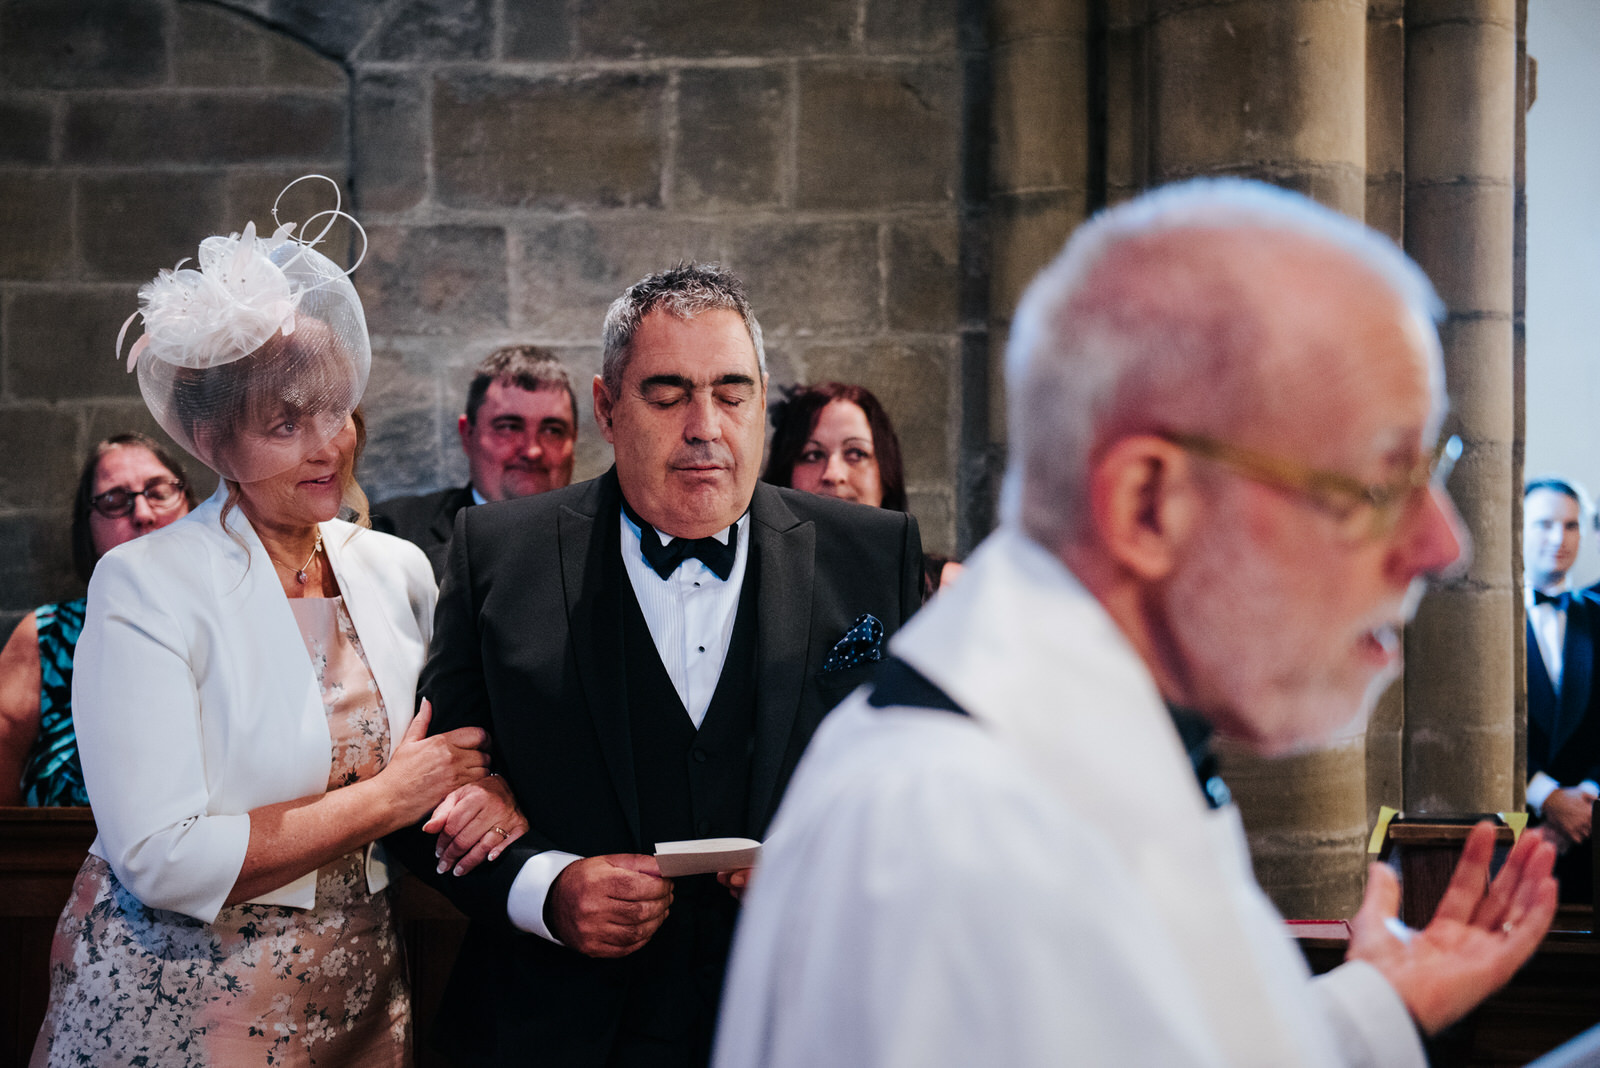 Father of the Groom closes eyes and embraces his wife as the wed